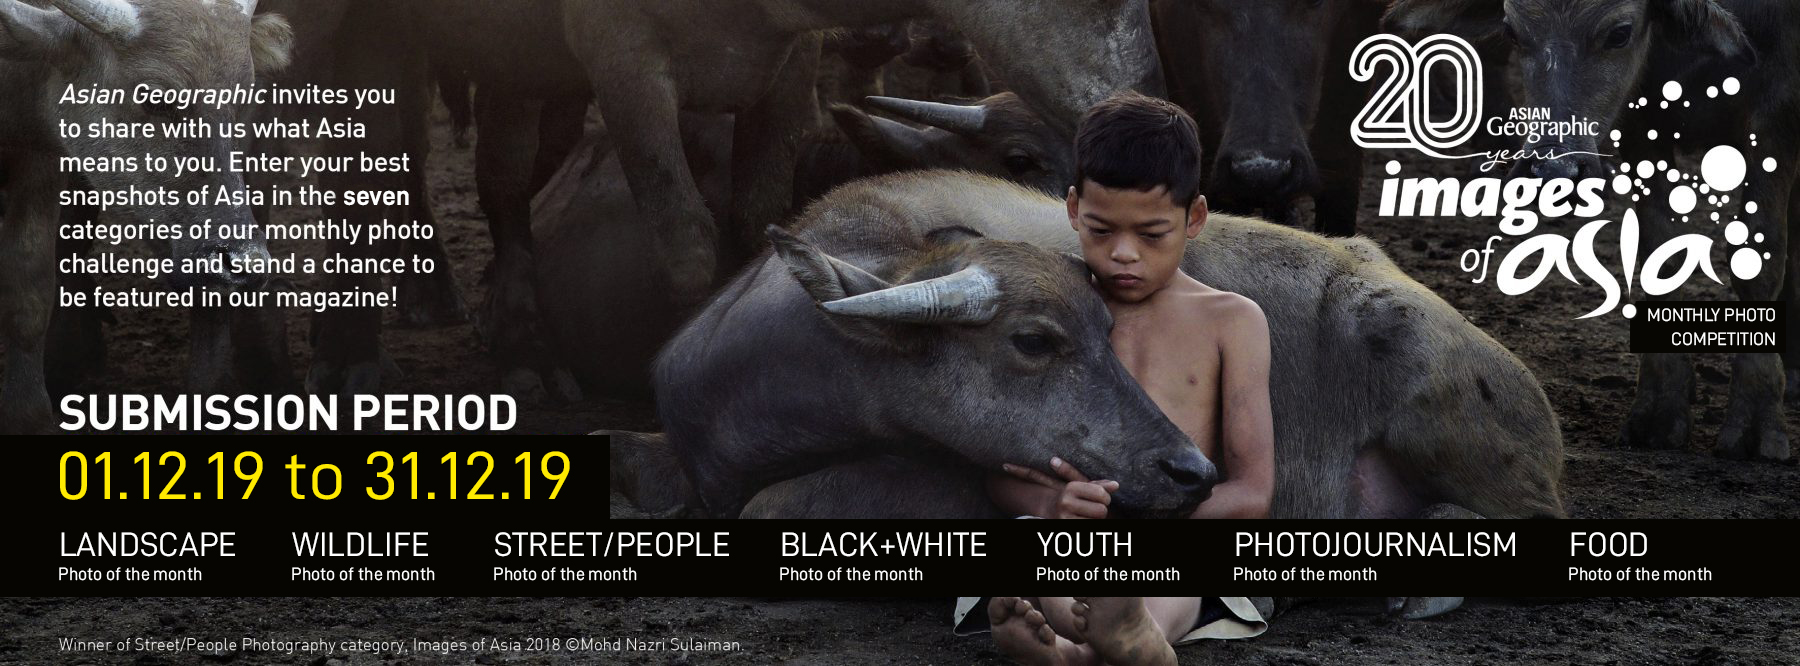 Images of Asia_2019 DEC Banners_Winner of Streets People_Mohd Nazri Sulaiman b